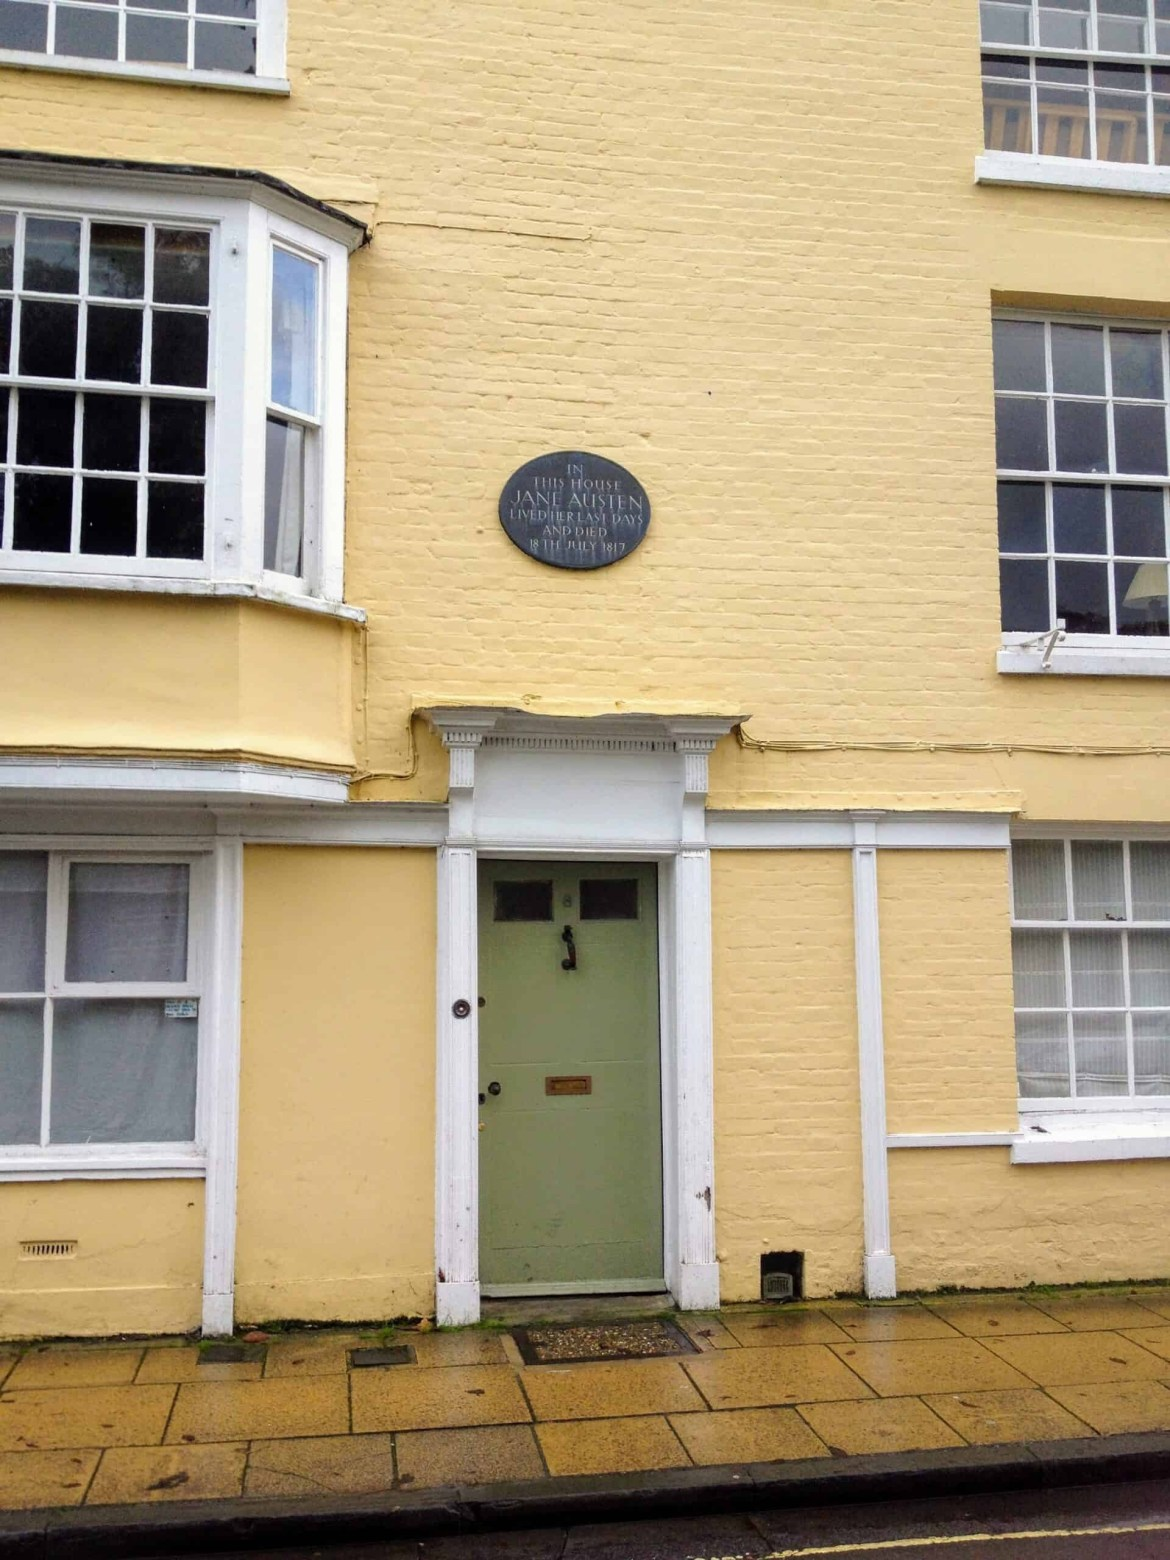 The house where Jane Austen spent her last days